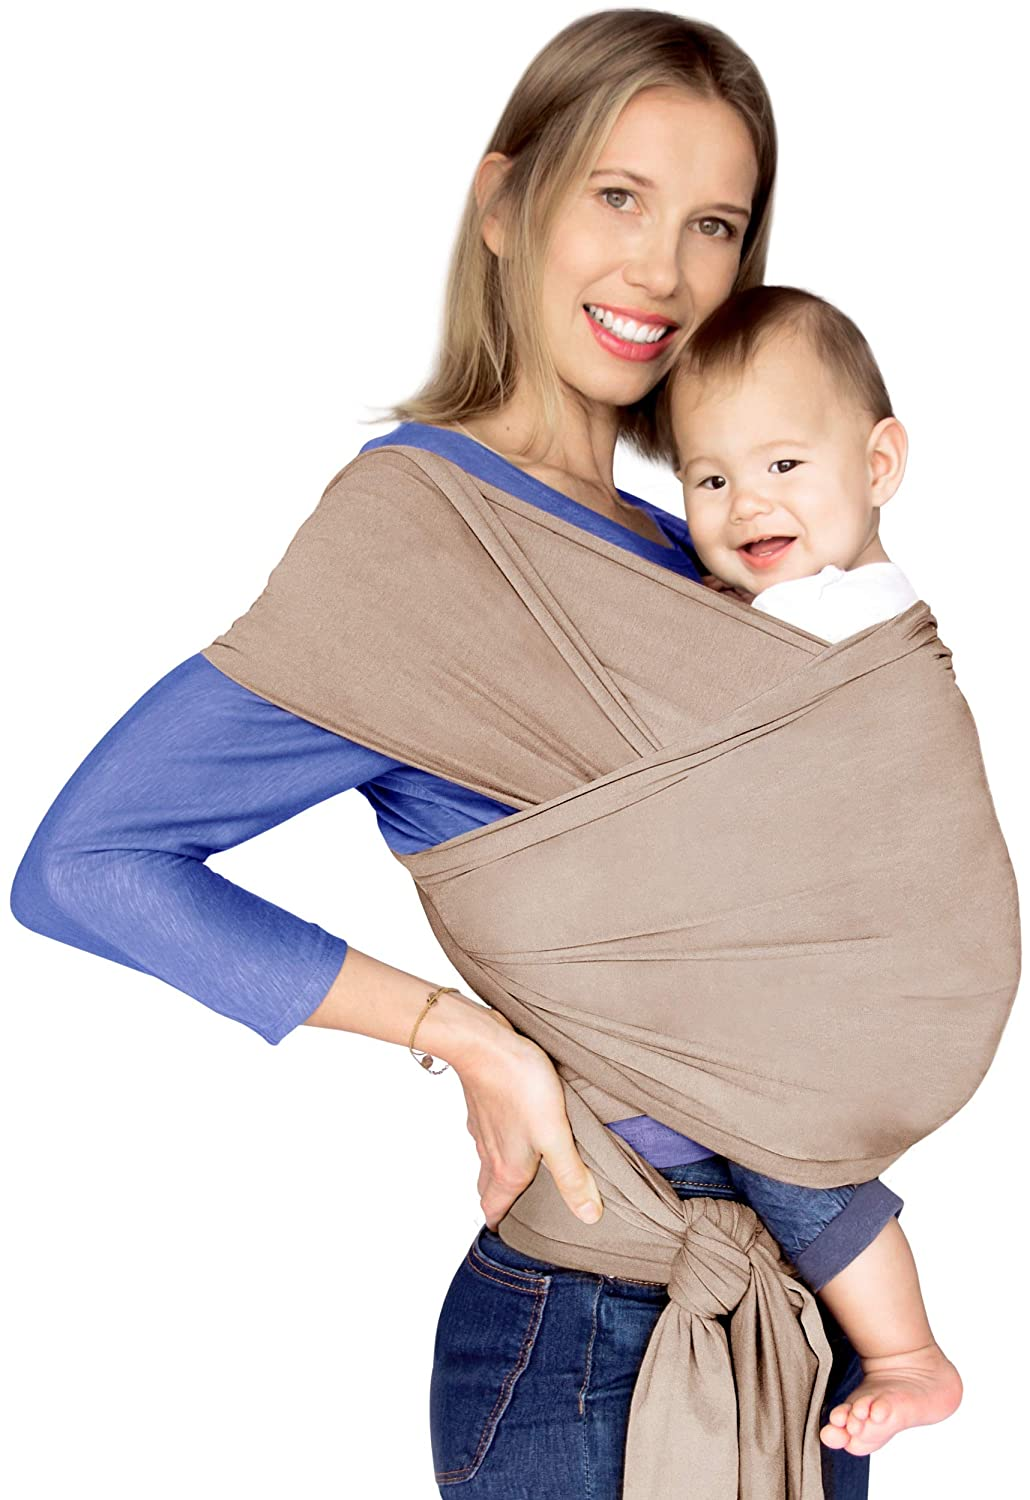 520371ac328 Amazon.com   Baby Wrap Carrier Newborn - Sling Swaddle Stretchy Baby Wraps  for Infant and Babies - Extra Soft Luxurious   Breathable Peruvian Cotton -  Hands ...